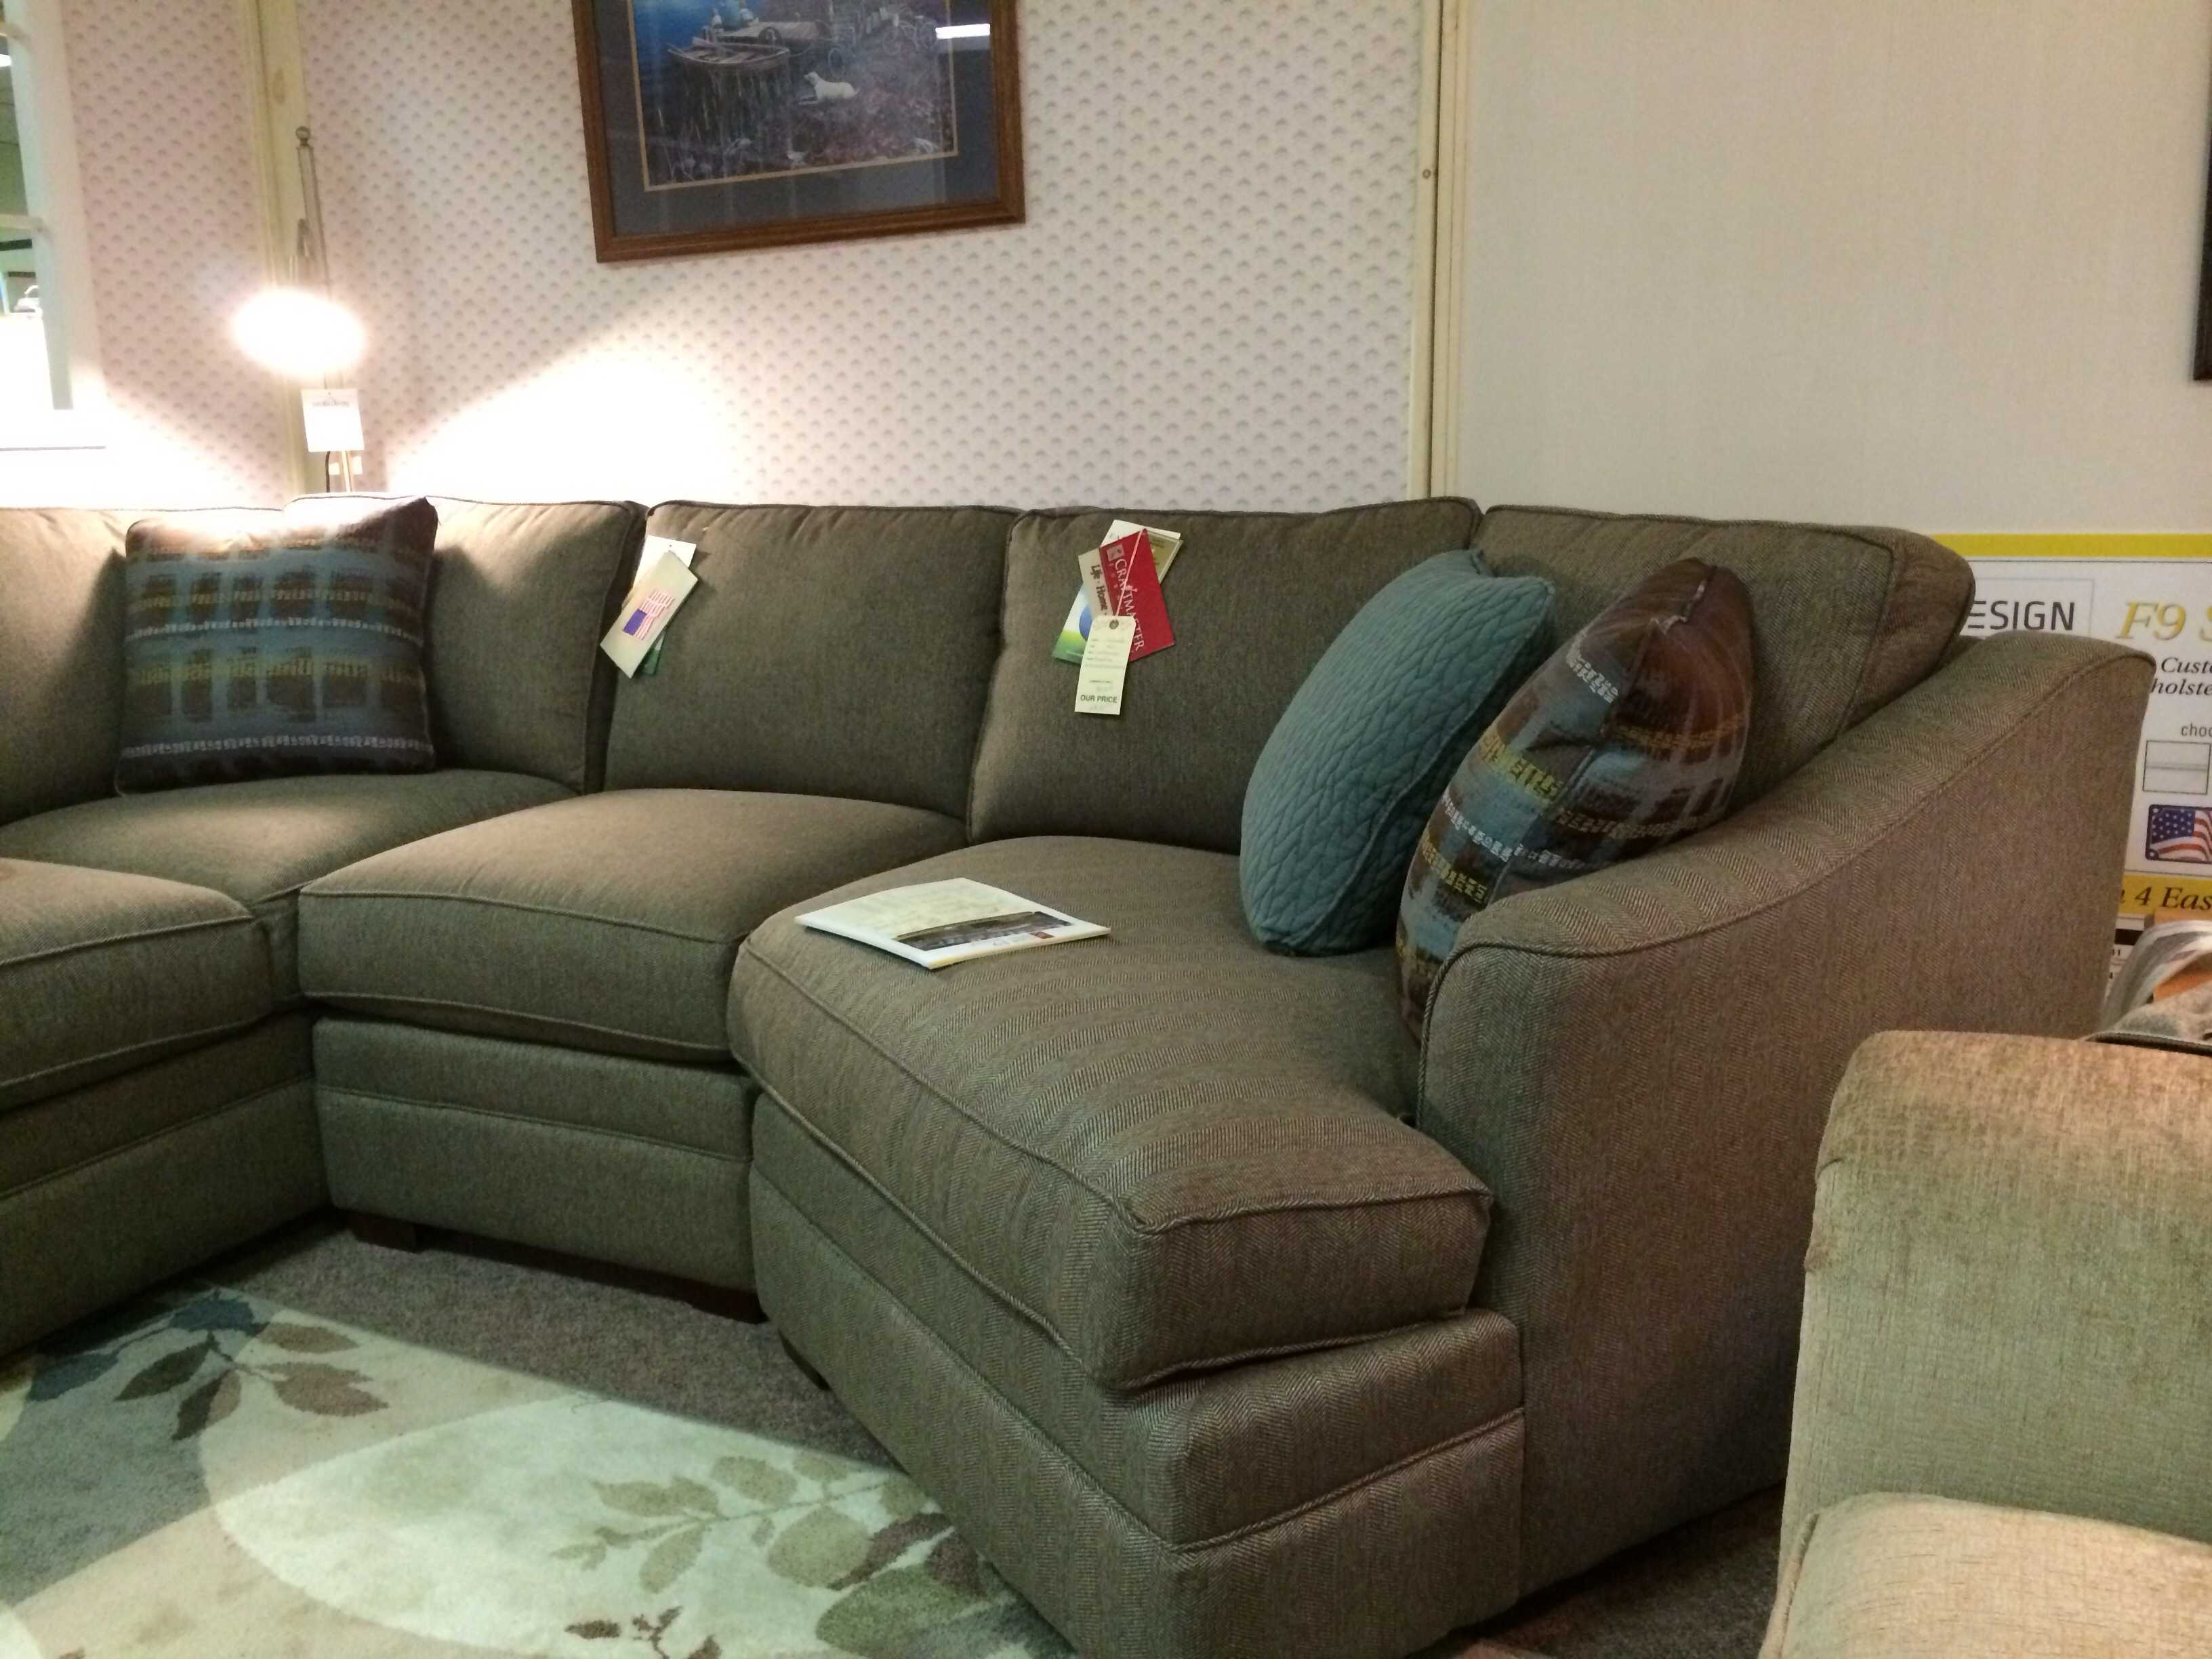 Awesome Sectional Sofa With Cuddler Chaise Also Ideas ~ Eduquin In Sectional Sofas With Cuddler Chaise (Image 1 of 10)